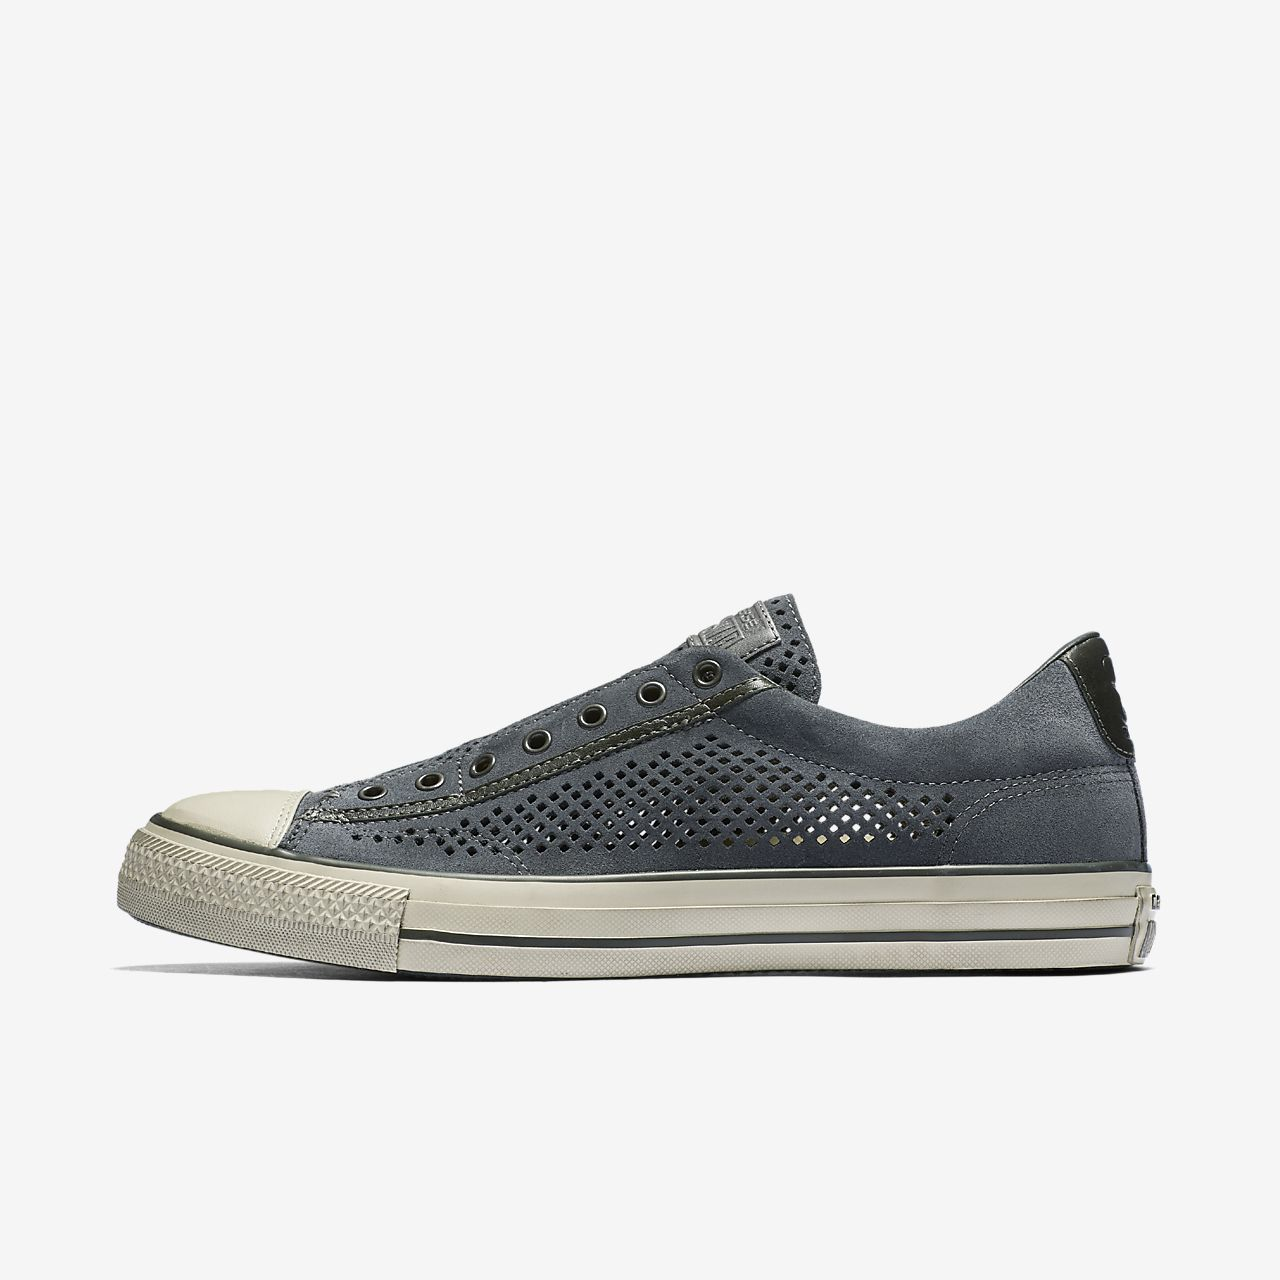 a463bf62f09d71 ... reduced converse x john varvatos chuck taylor all star perforated  leather slip on unisex shoe 44334